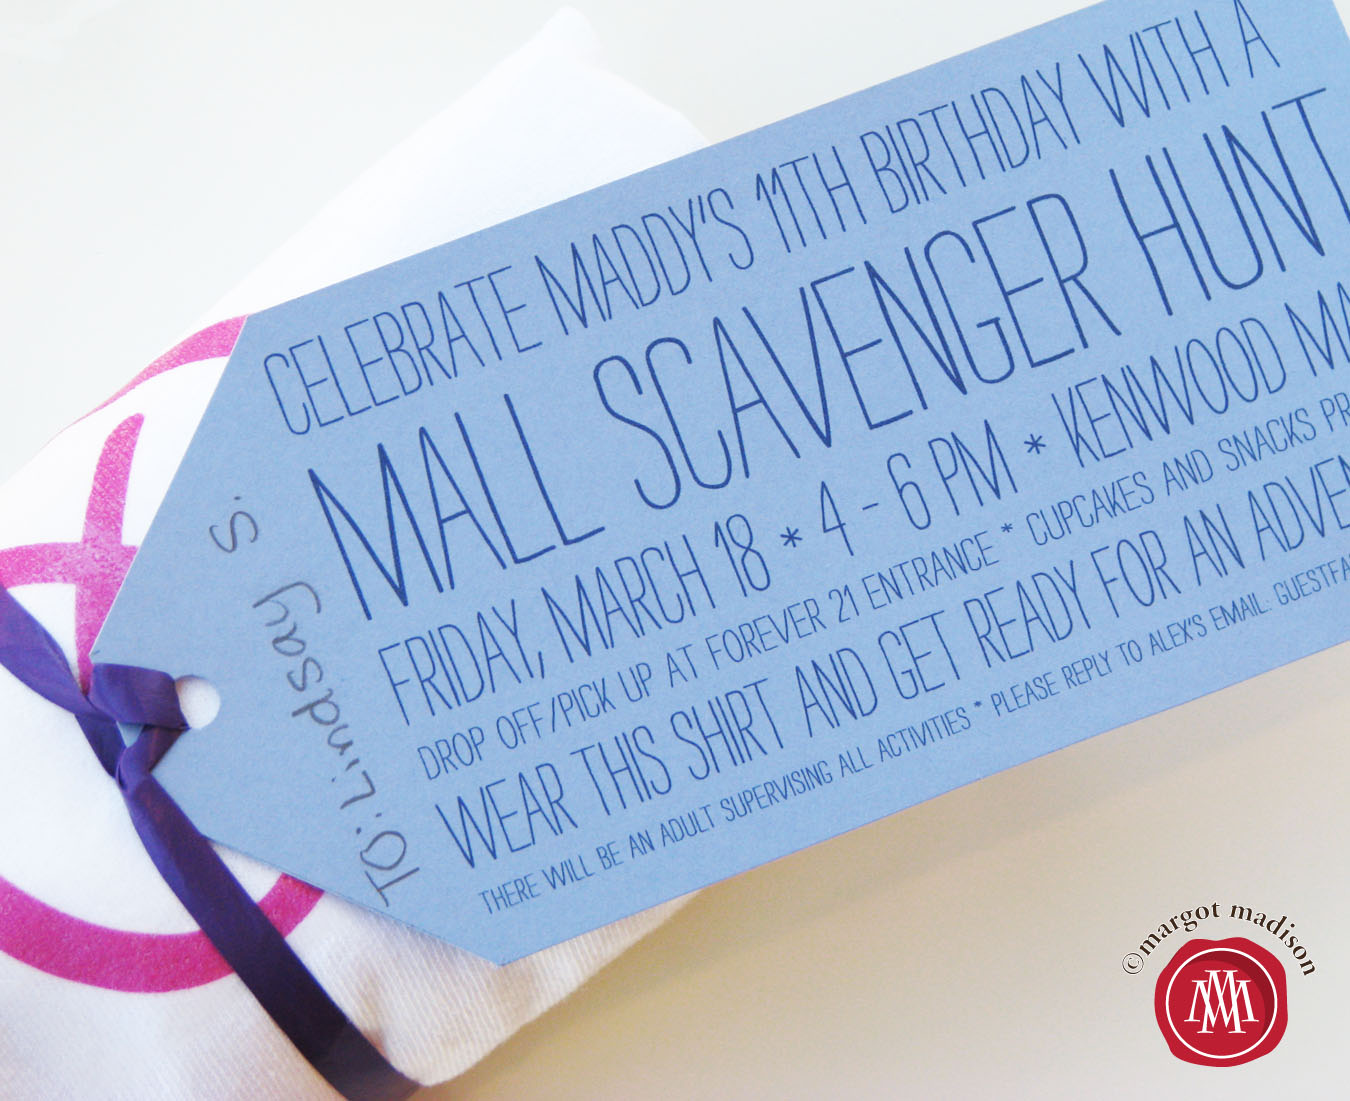 Margotmadison Mall Scavenger Hunt Party For Tweens